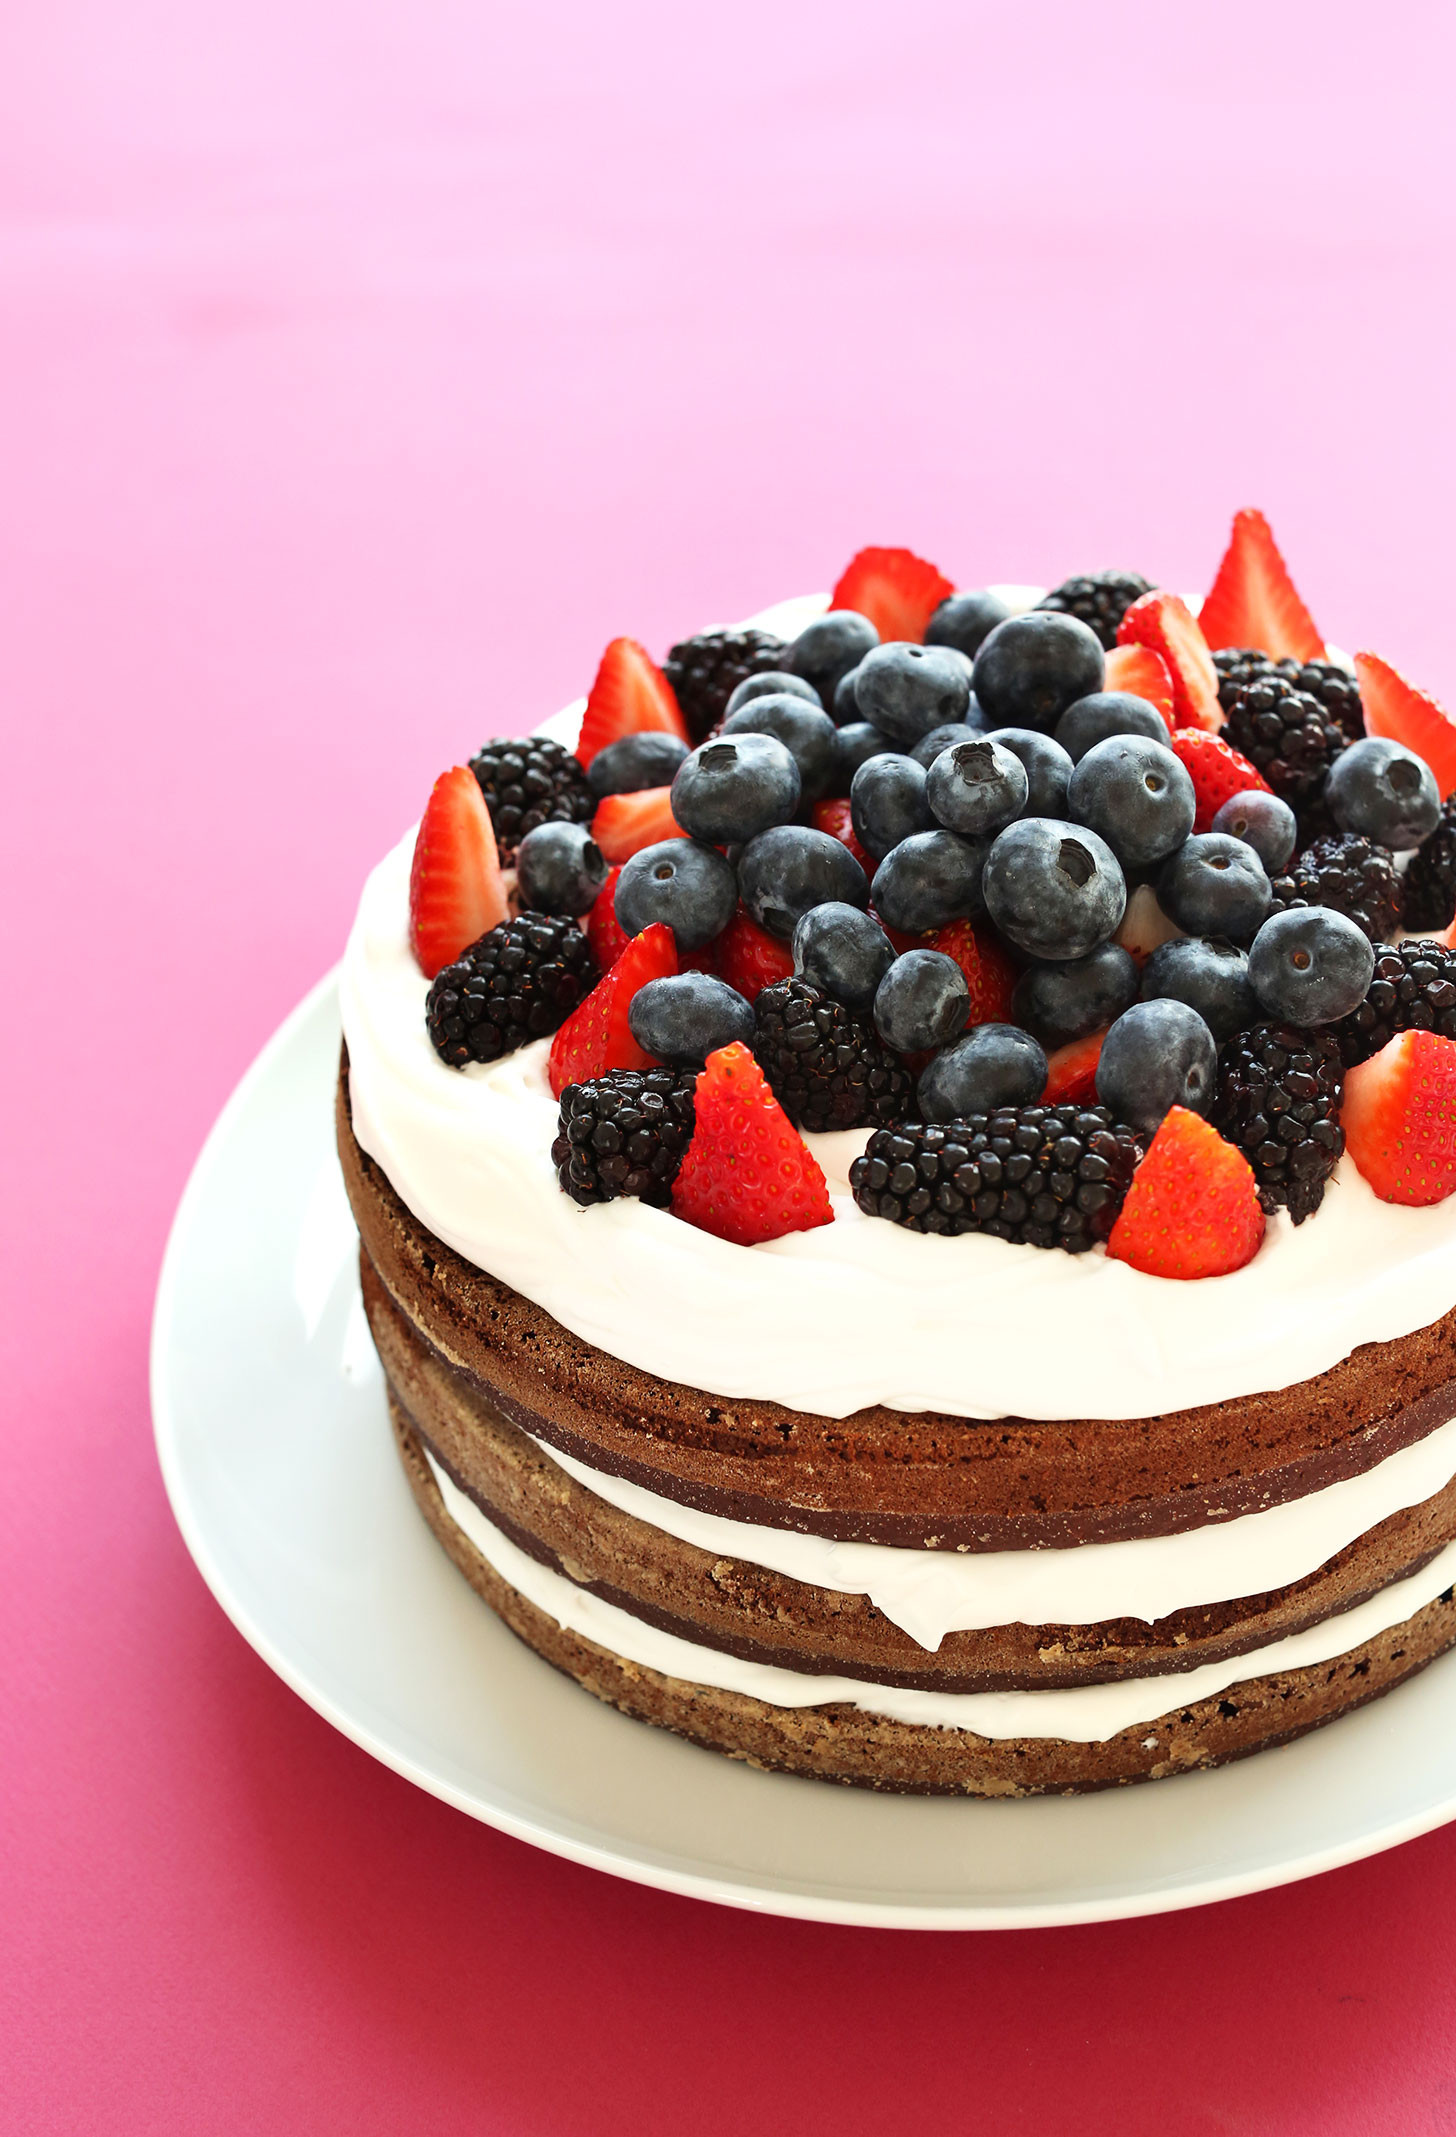 Best ideas about Gluten Free Birthday Cake . Save or Pin AMAZING 1 Bowl Chocolate Cake with Coconut Whipped Cream Now.